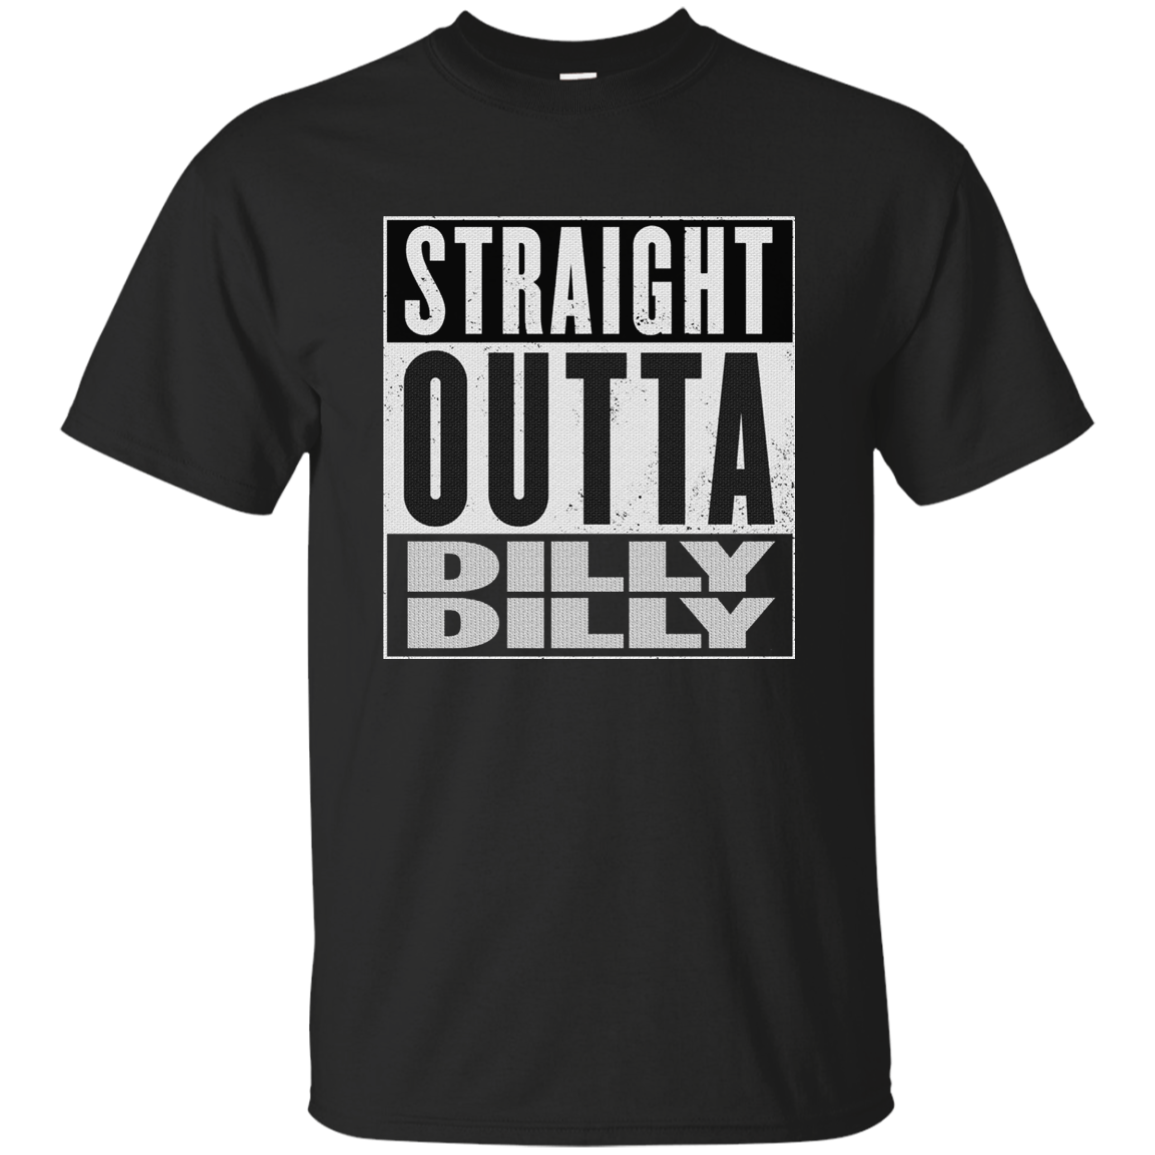 Bud Light Official Straight Outta Dilly Dilly T-shirt